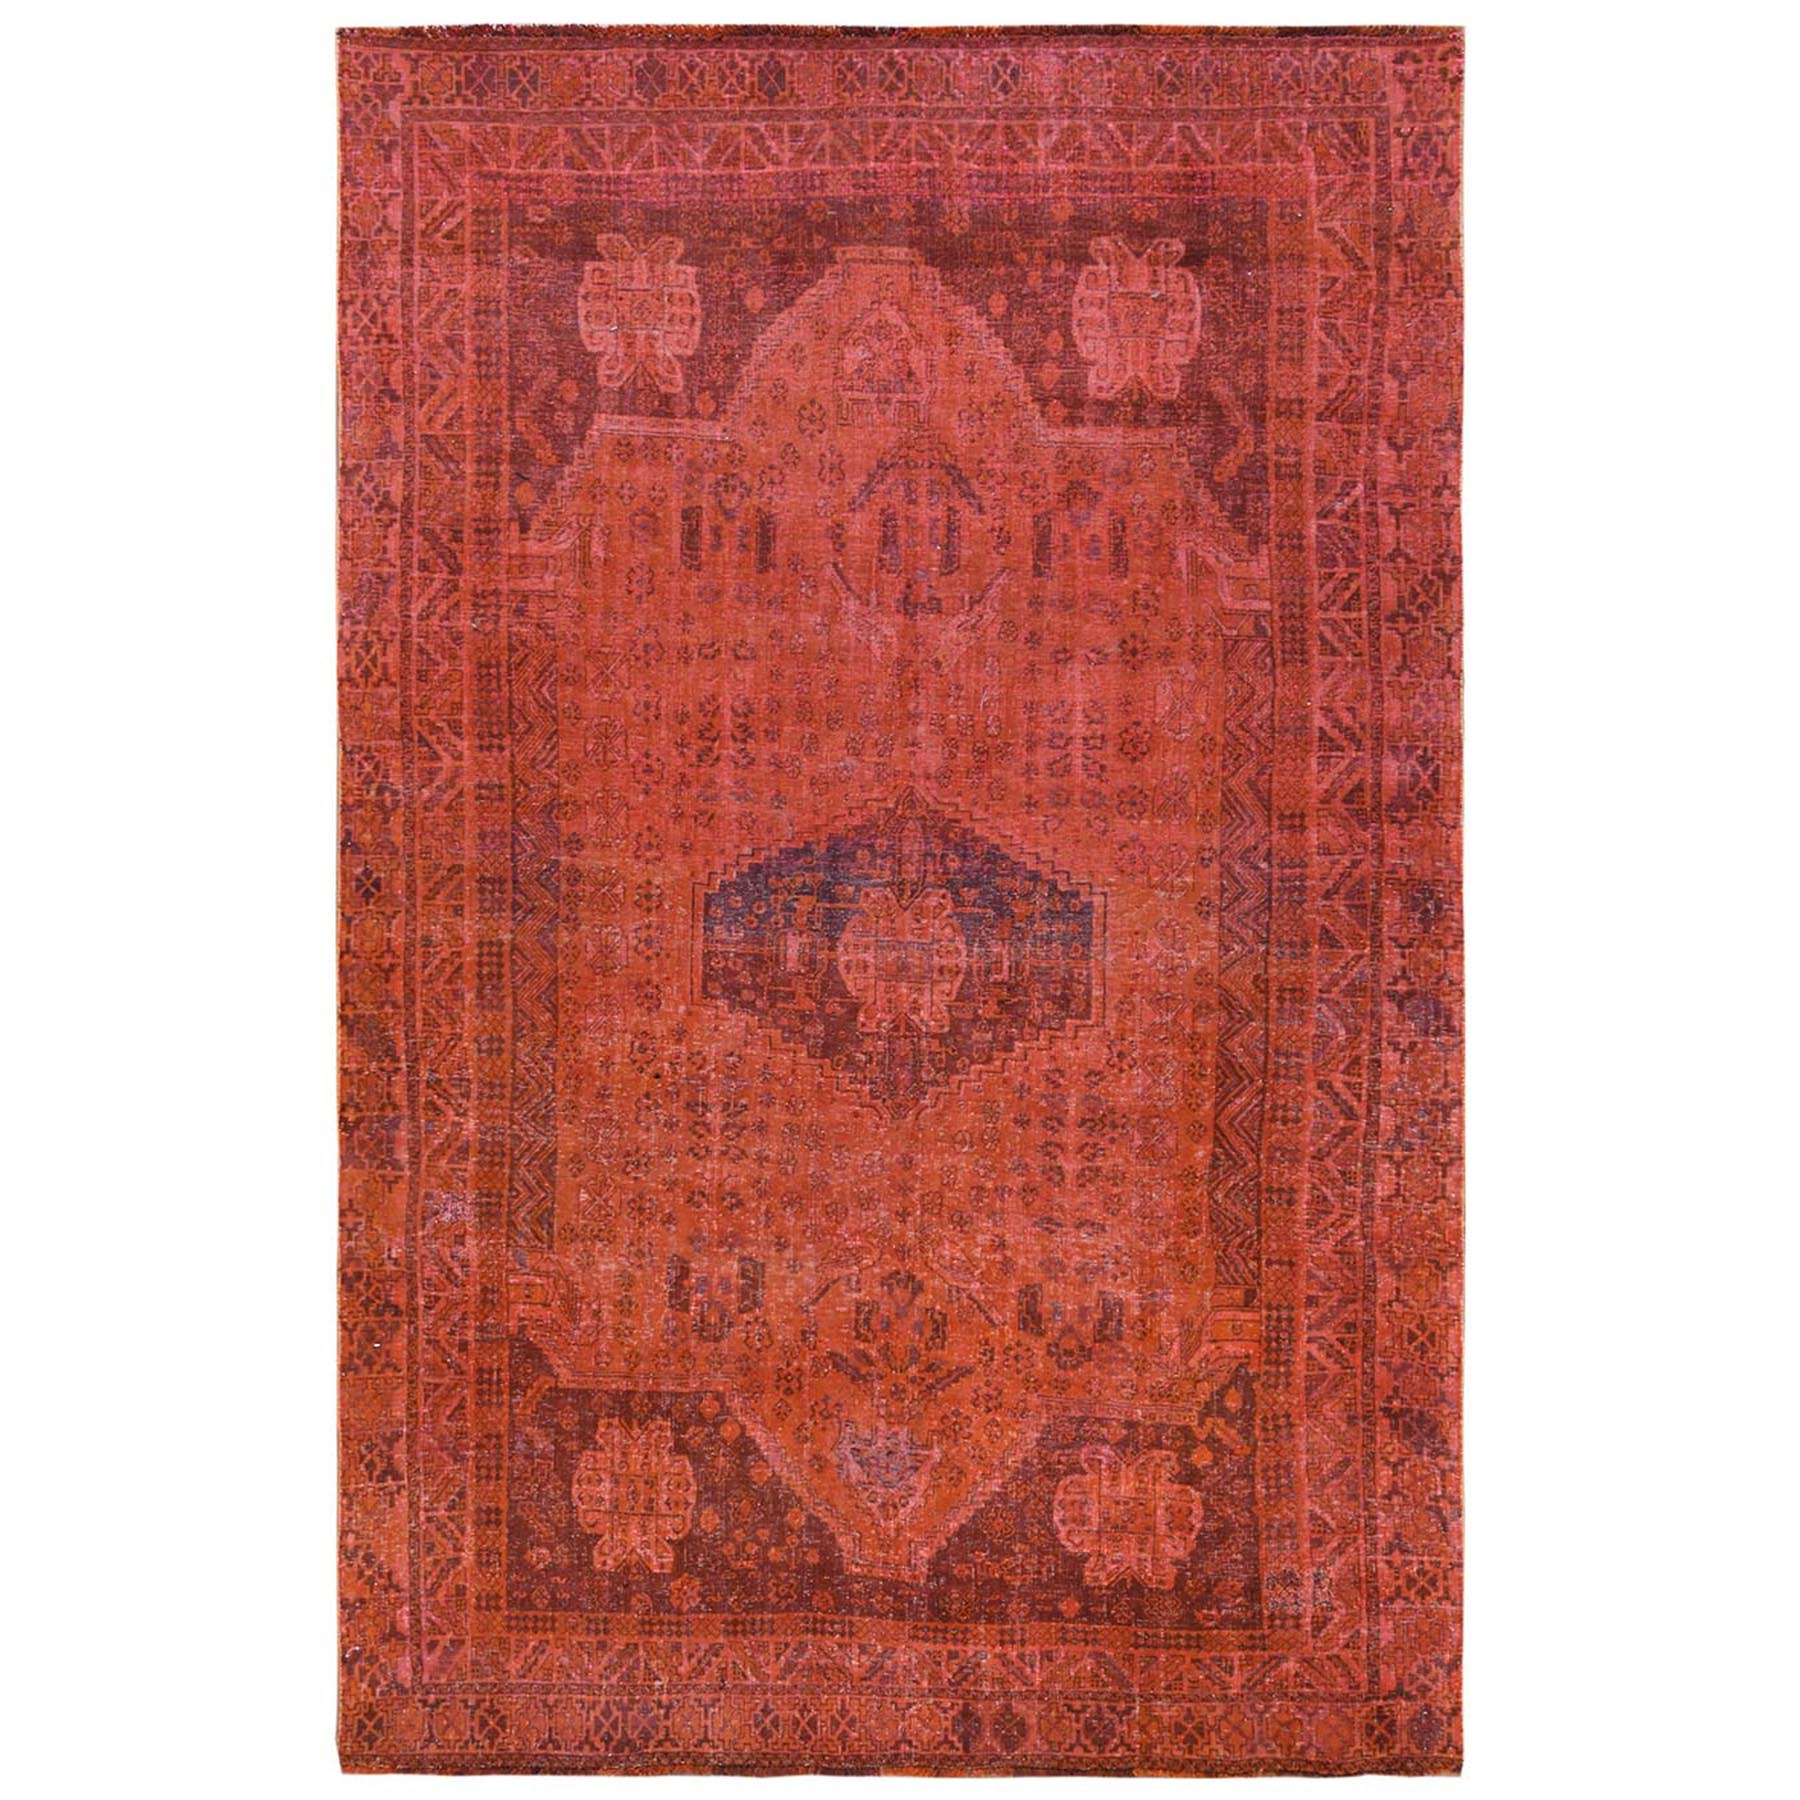 Fetneh Collection And Vintage Overdyed Collection Hand Knotted Orange Rug No: 1122130